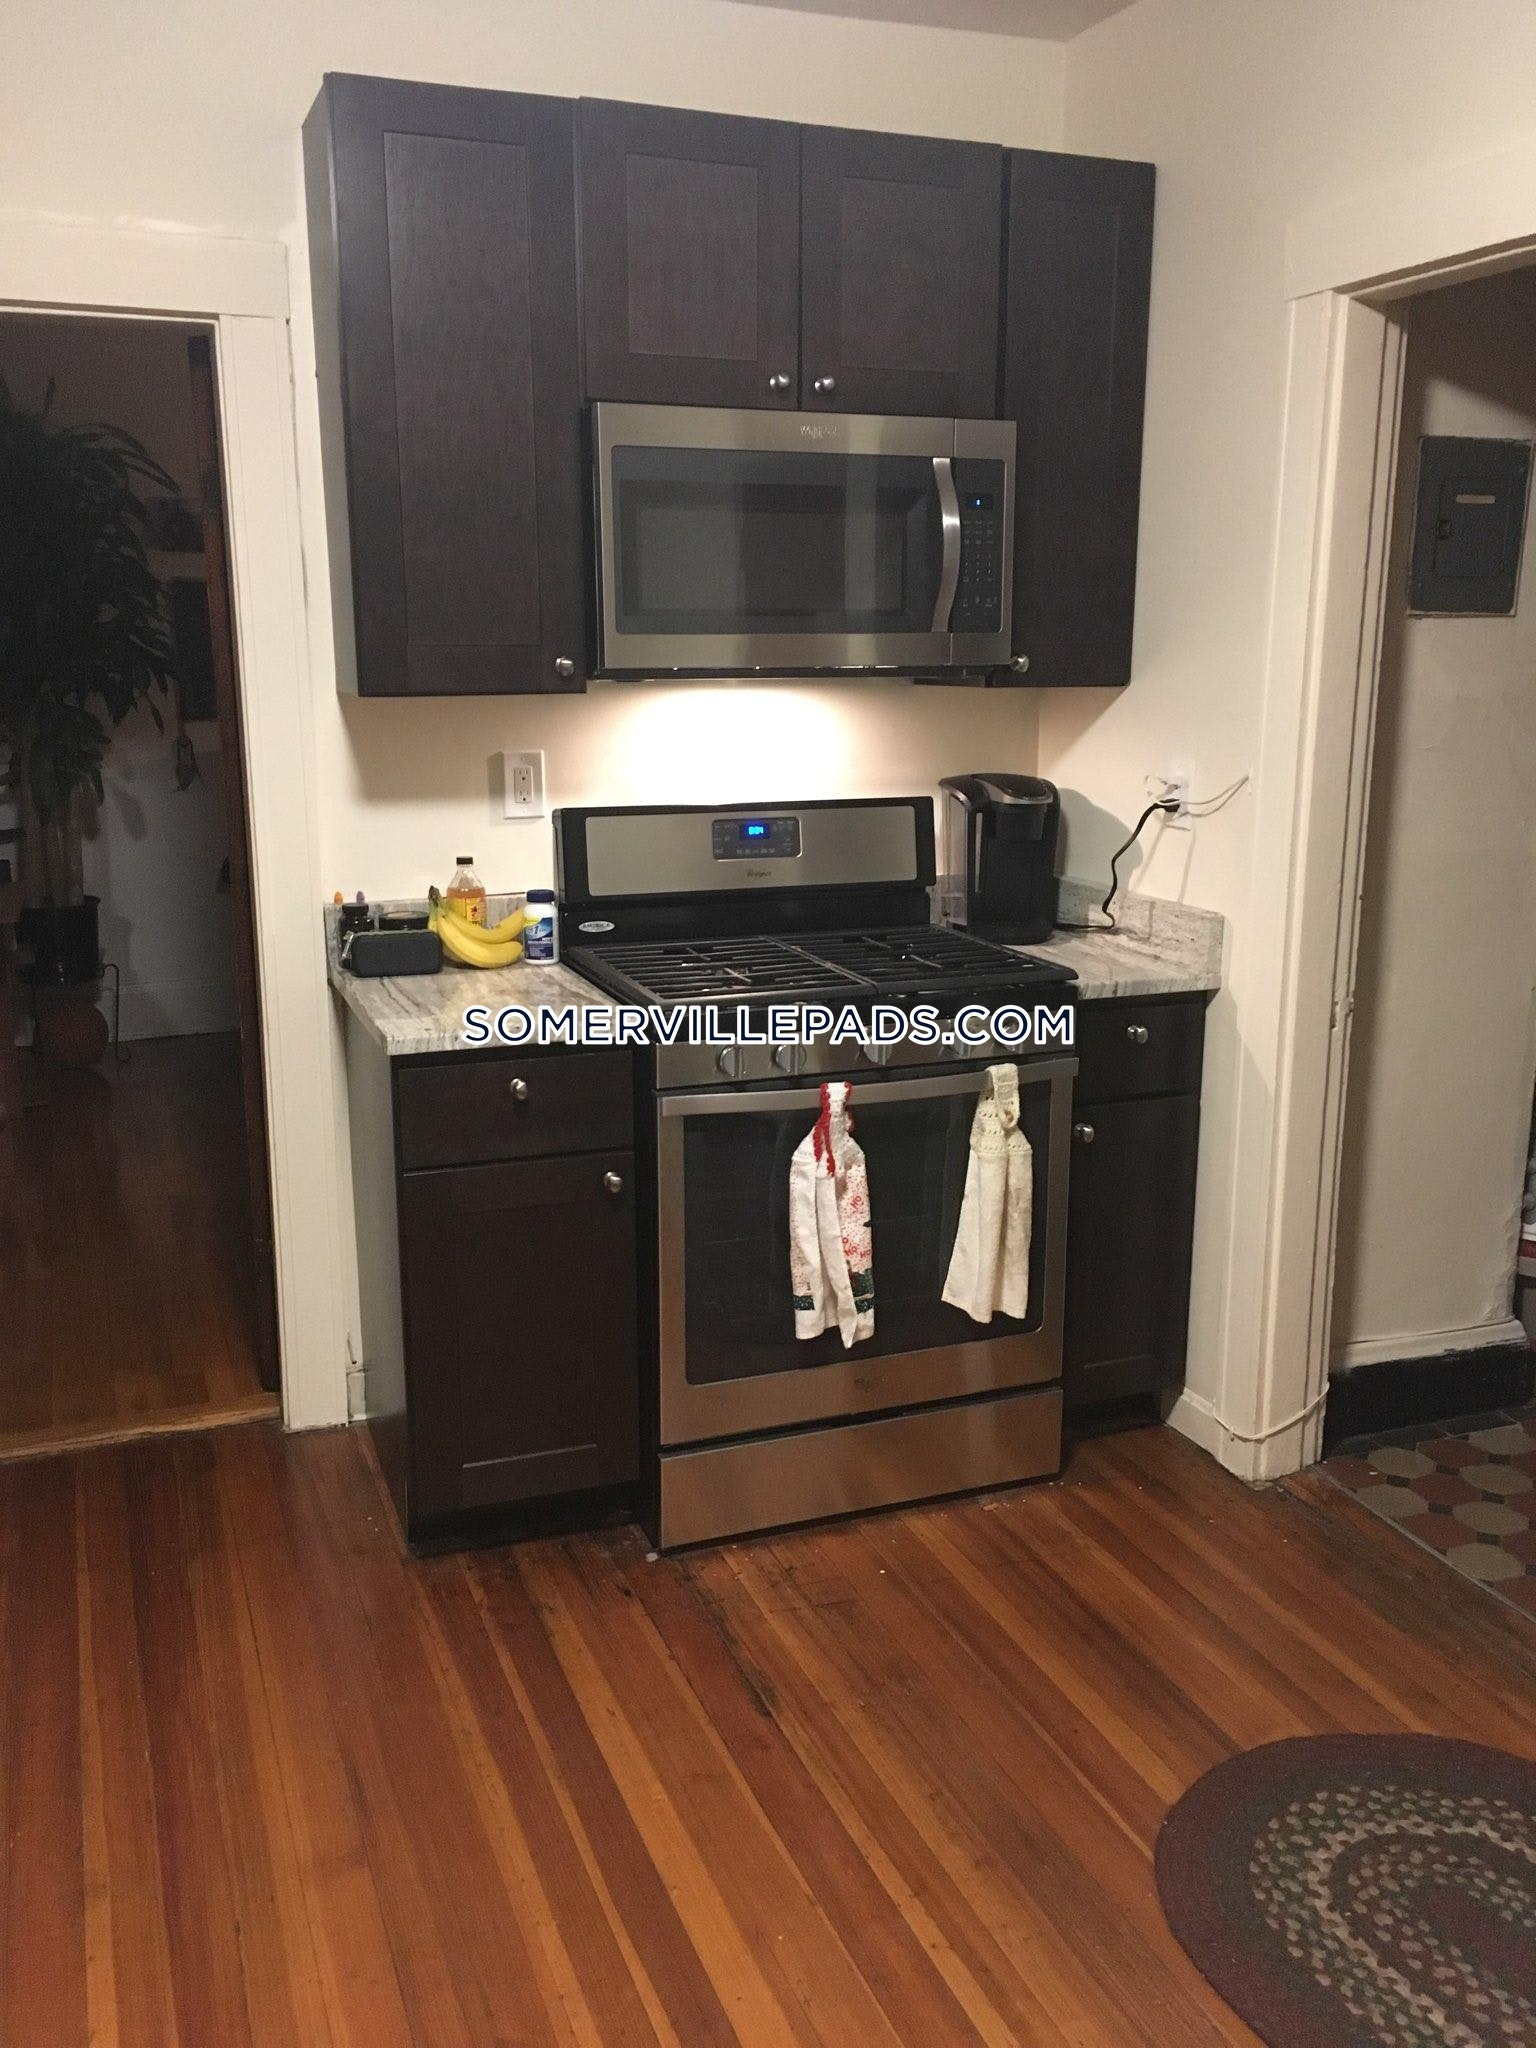 3-beds-1-bath-somerville-west-somerville-teele-square-2350-426369